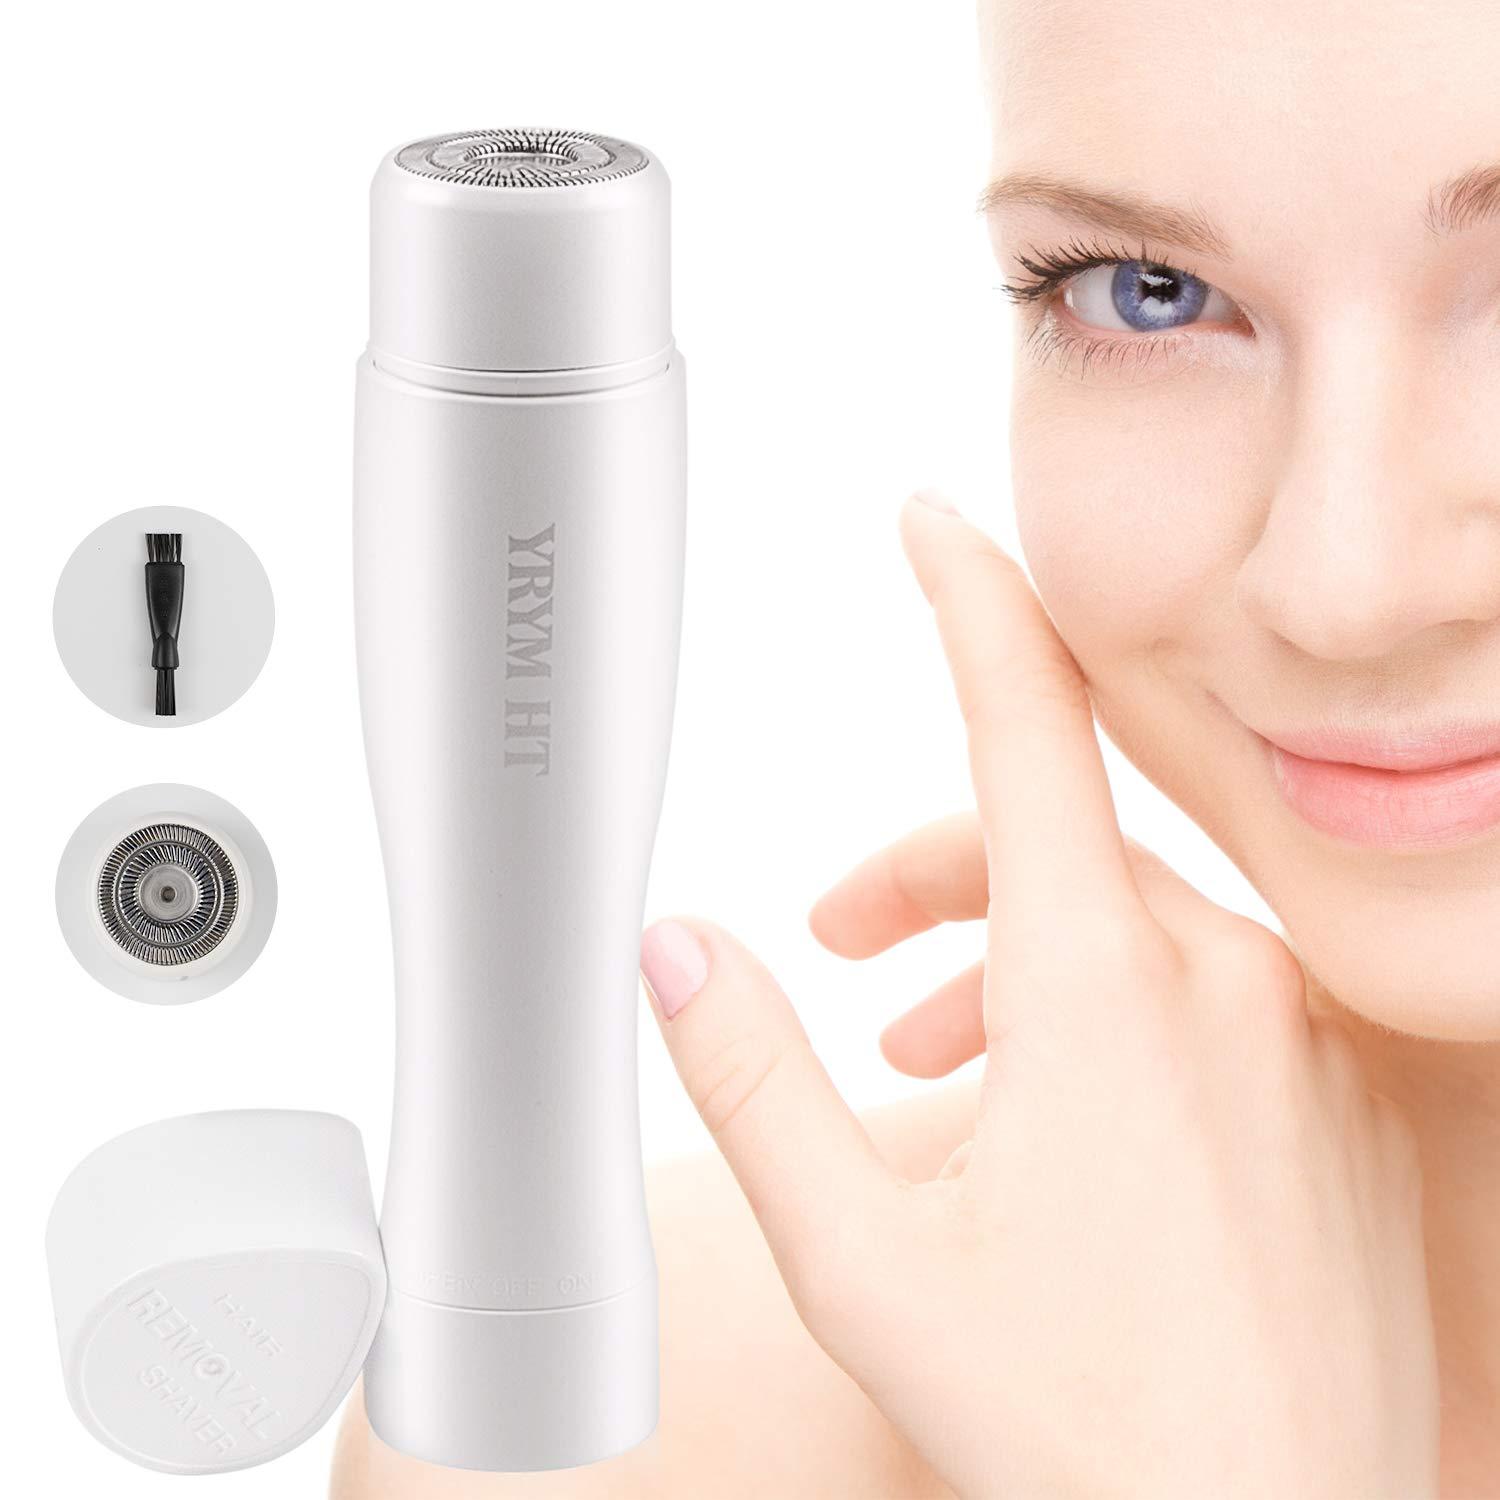 Facial Hair Removal for Women Painless Remover for Face, Lips, Chin and Cheek, Waterproof with 1 Extra Replacement Head,